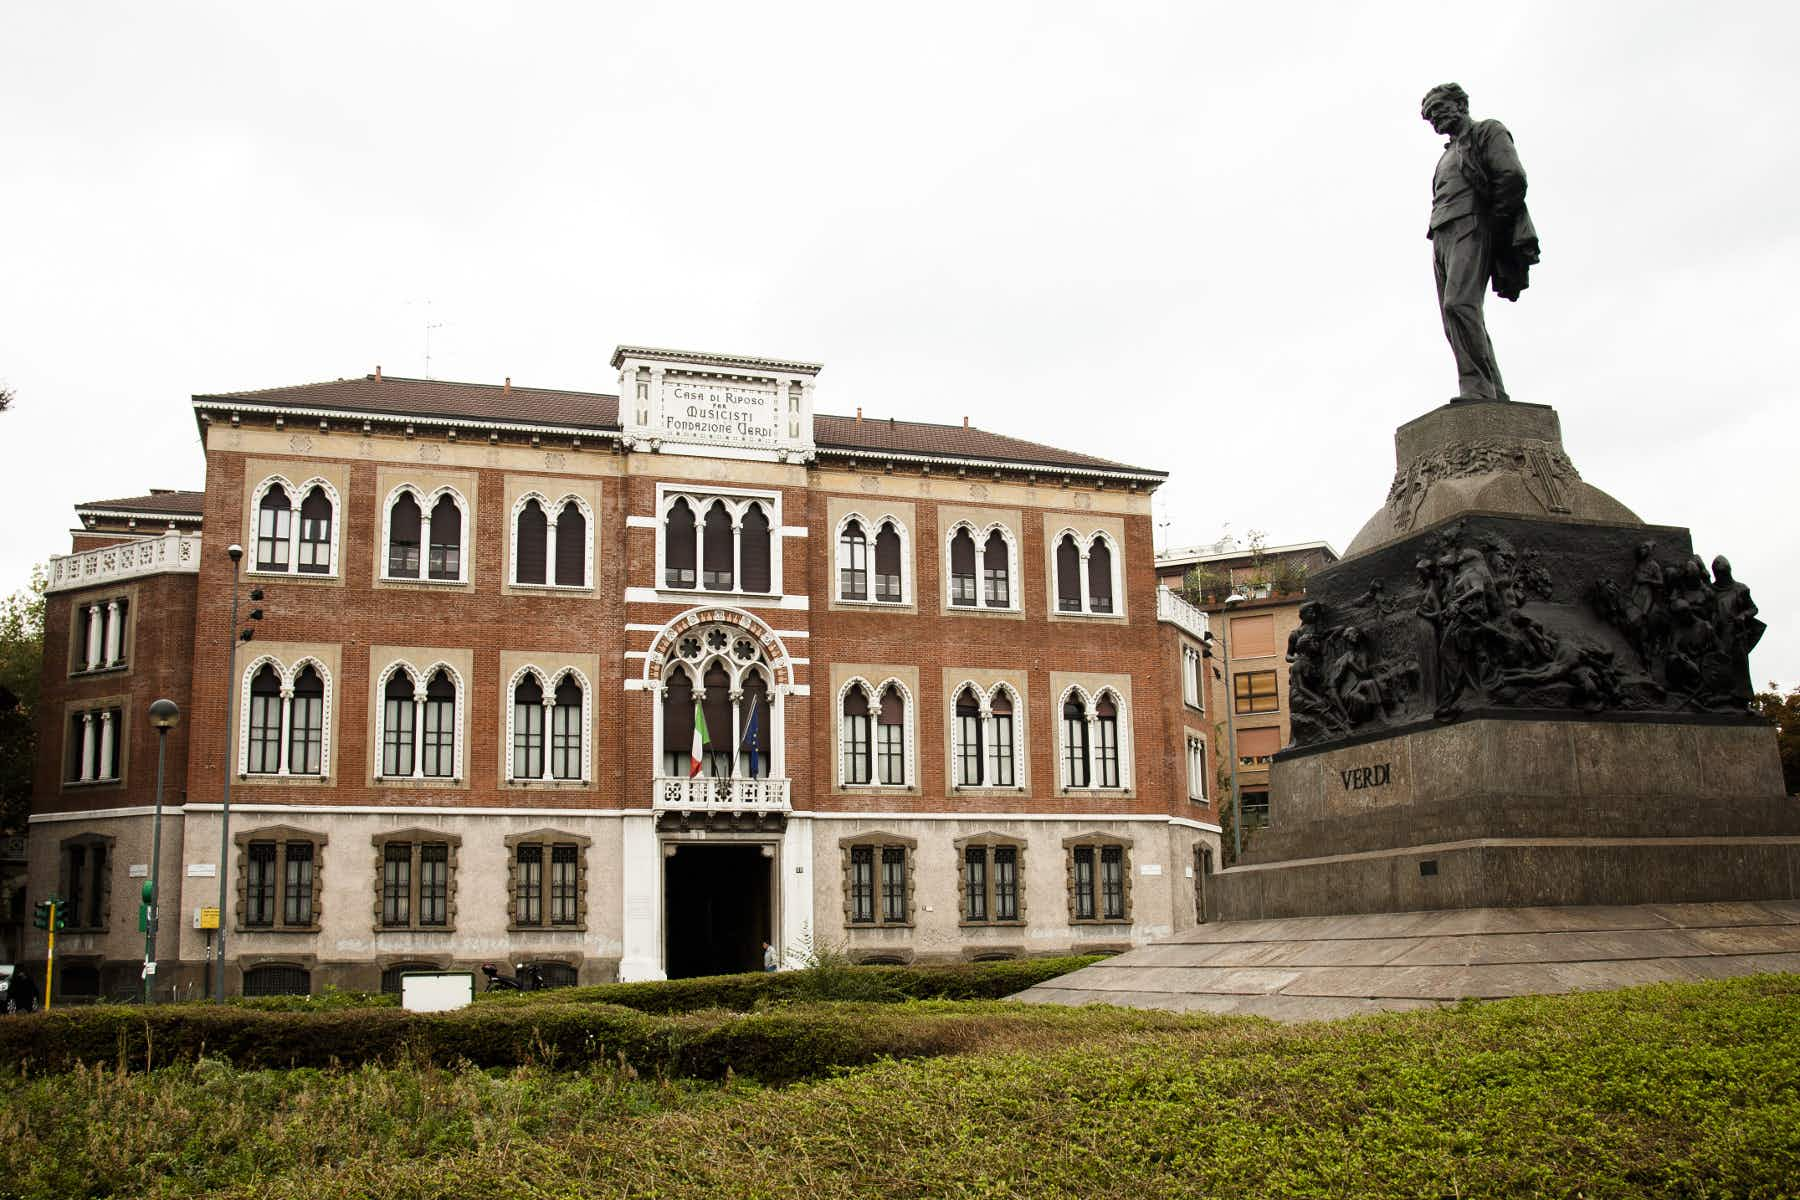 Verdi's gift of a retirement home for musicians is open to the public